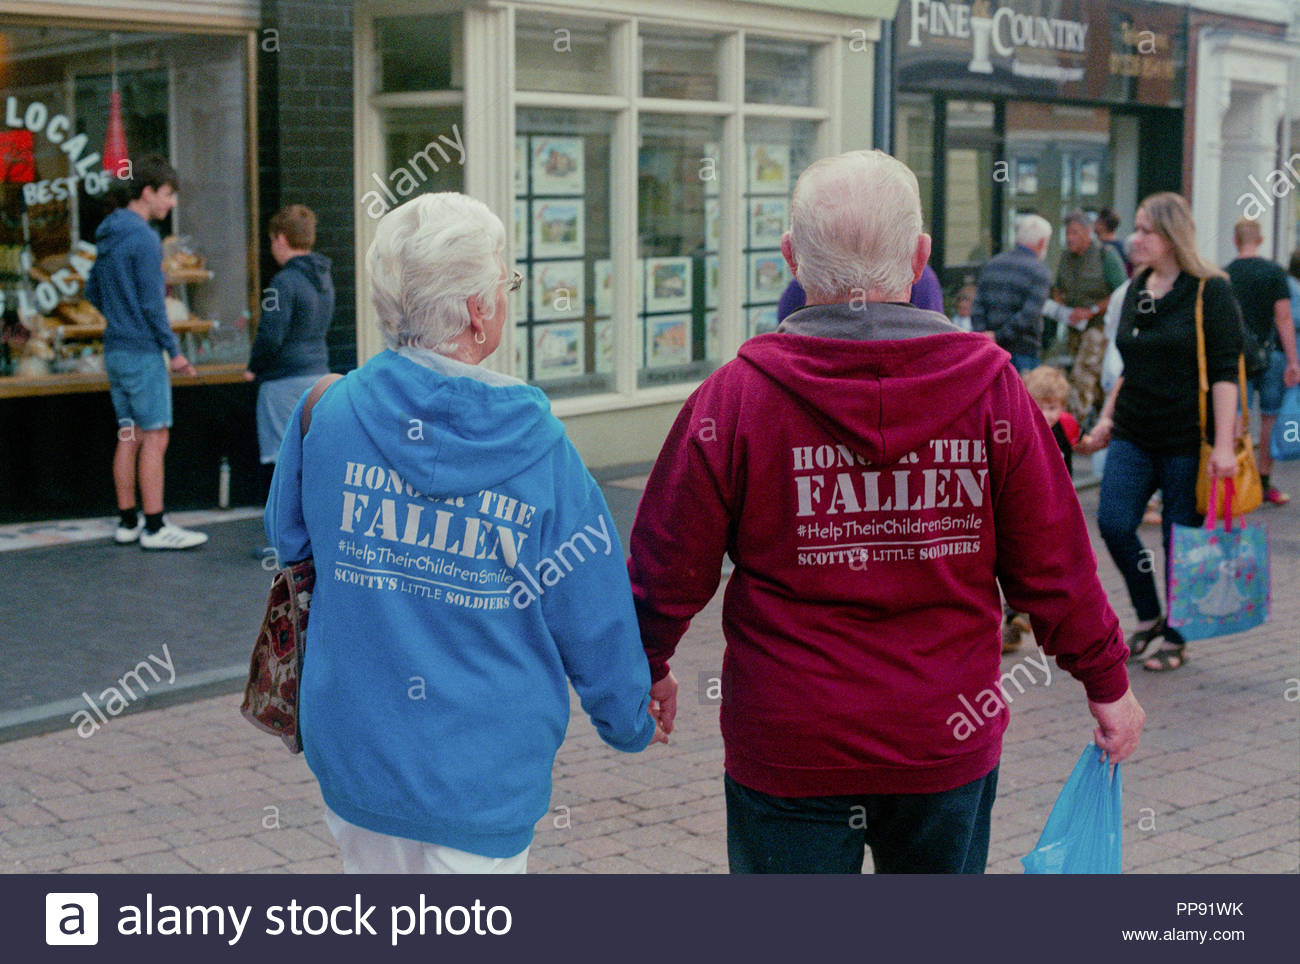 Ptsd Afghanistan Stock Photos Images Alamy One Piece Death Doctor Hoodie A Couple Wear Clothing Supporting The Scottys Little Soldiers Charity Which Supports Children Whose Parents Have